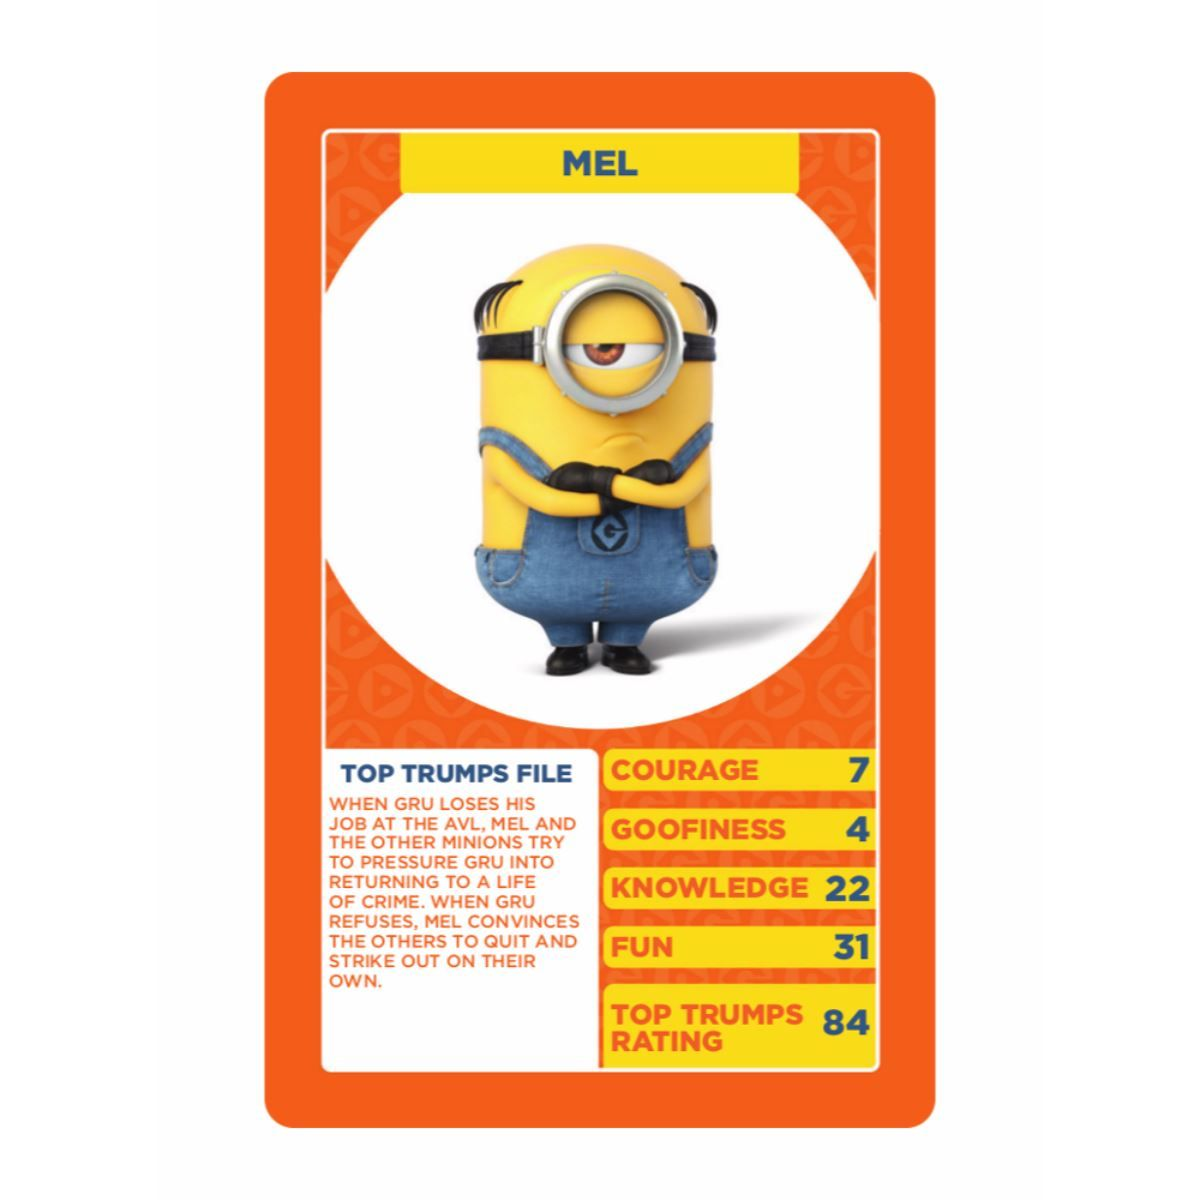 Details about despicable me 3 top trumps card game